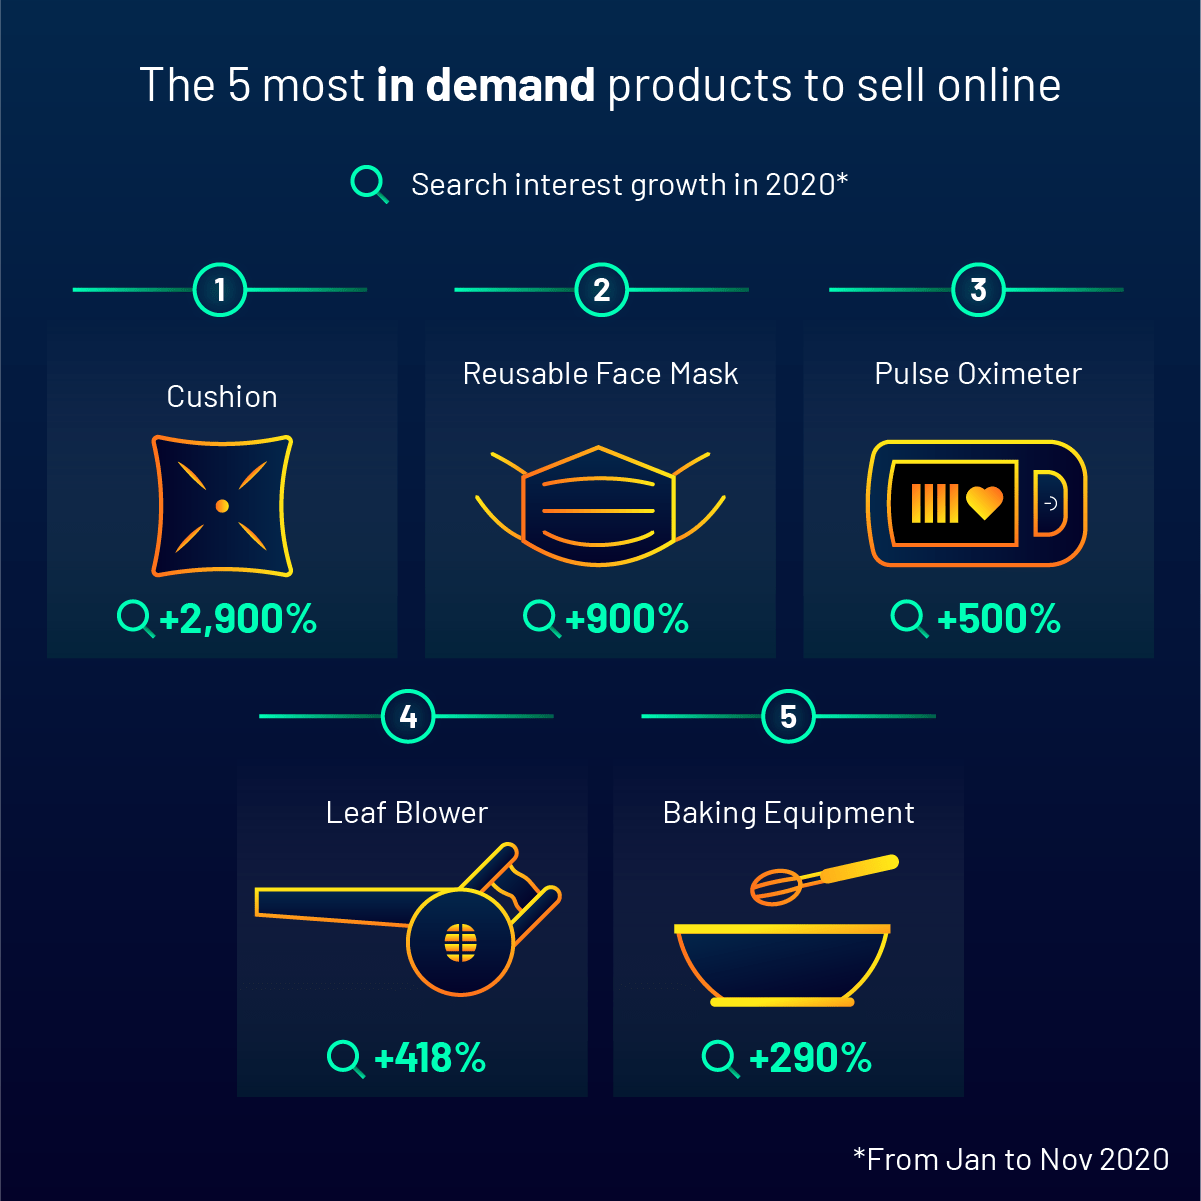 Most in demand products to sell